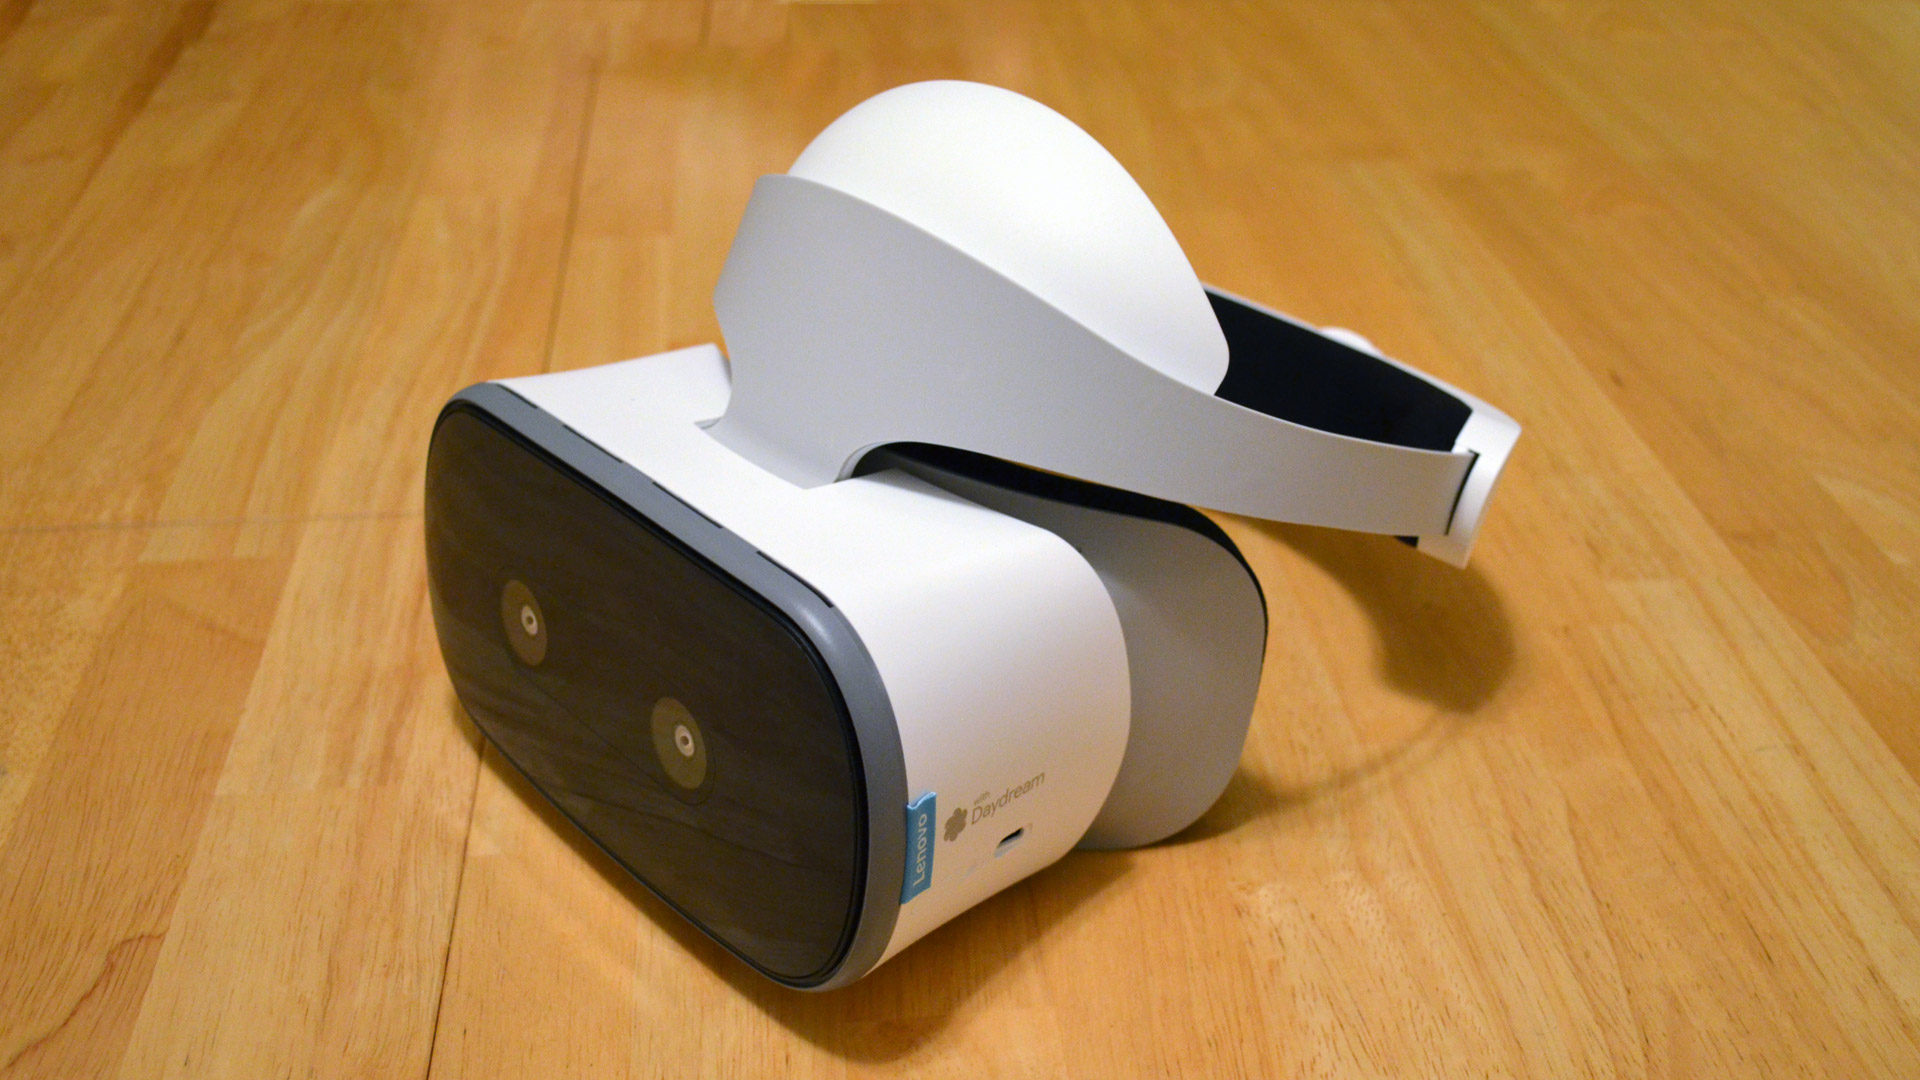 Lenovo Mirage Solo Review: Positional Tracking Comes to Mobile VR